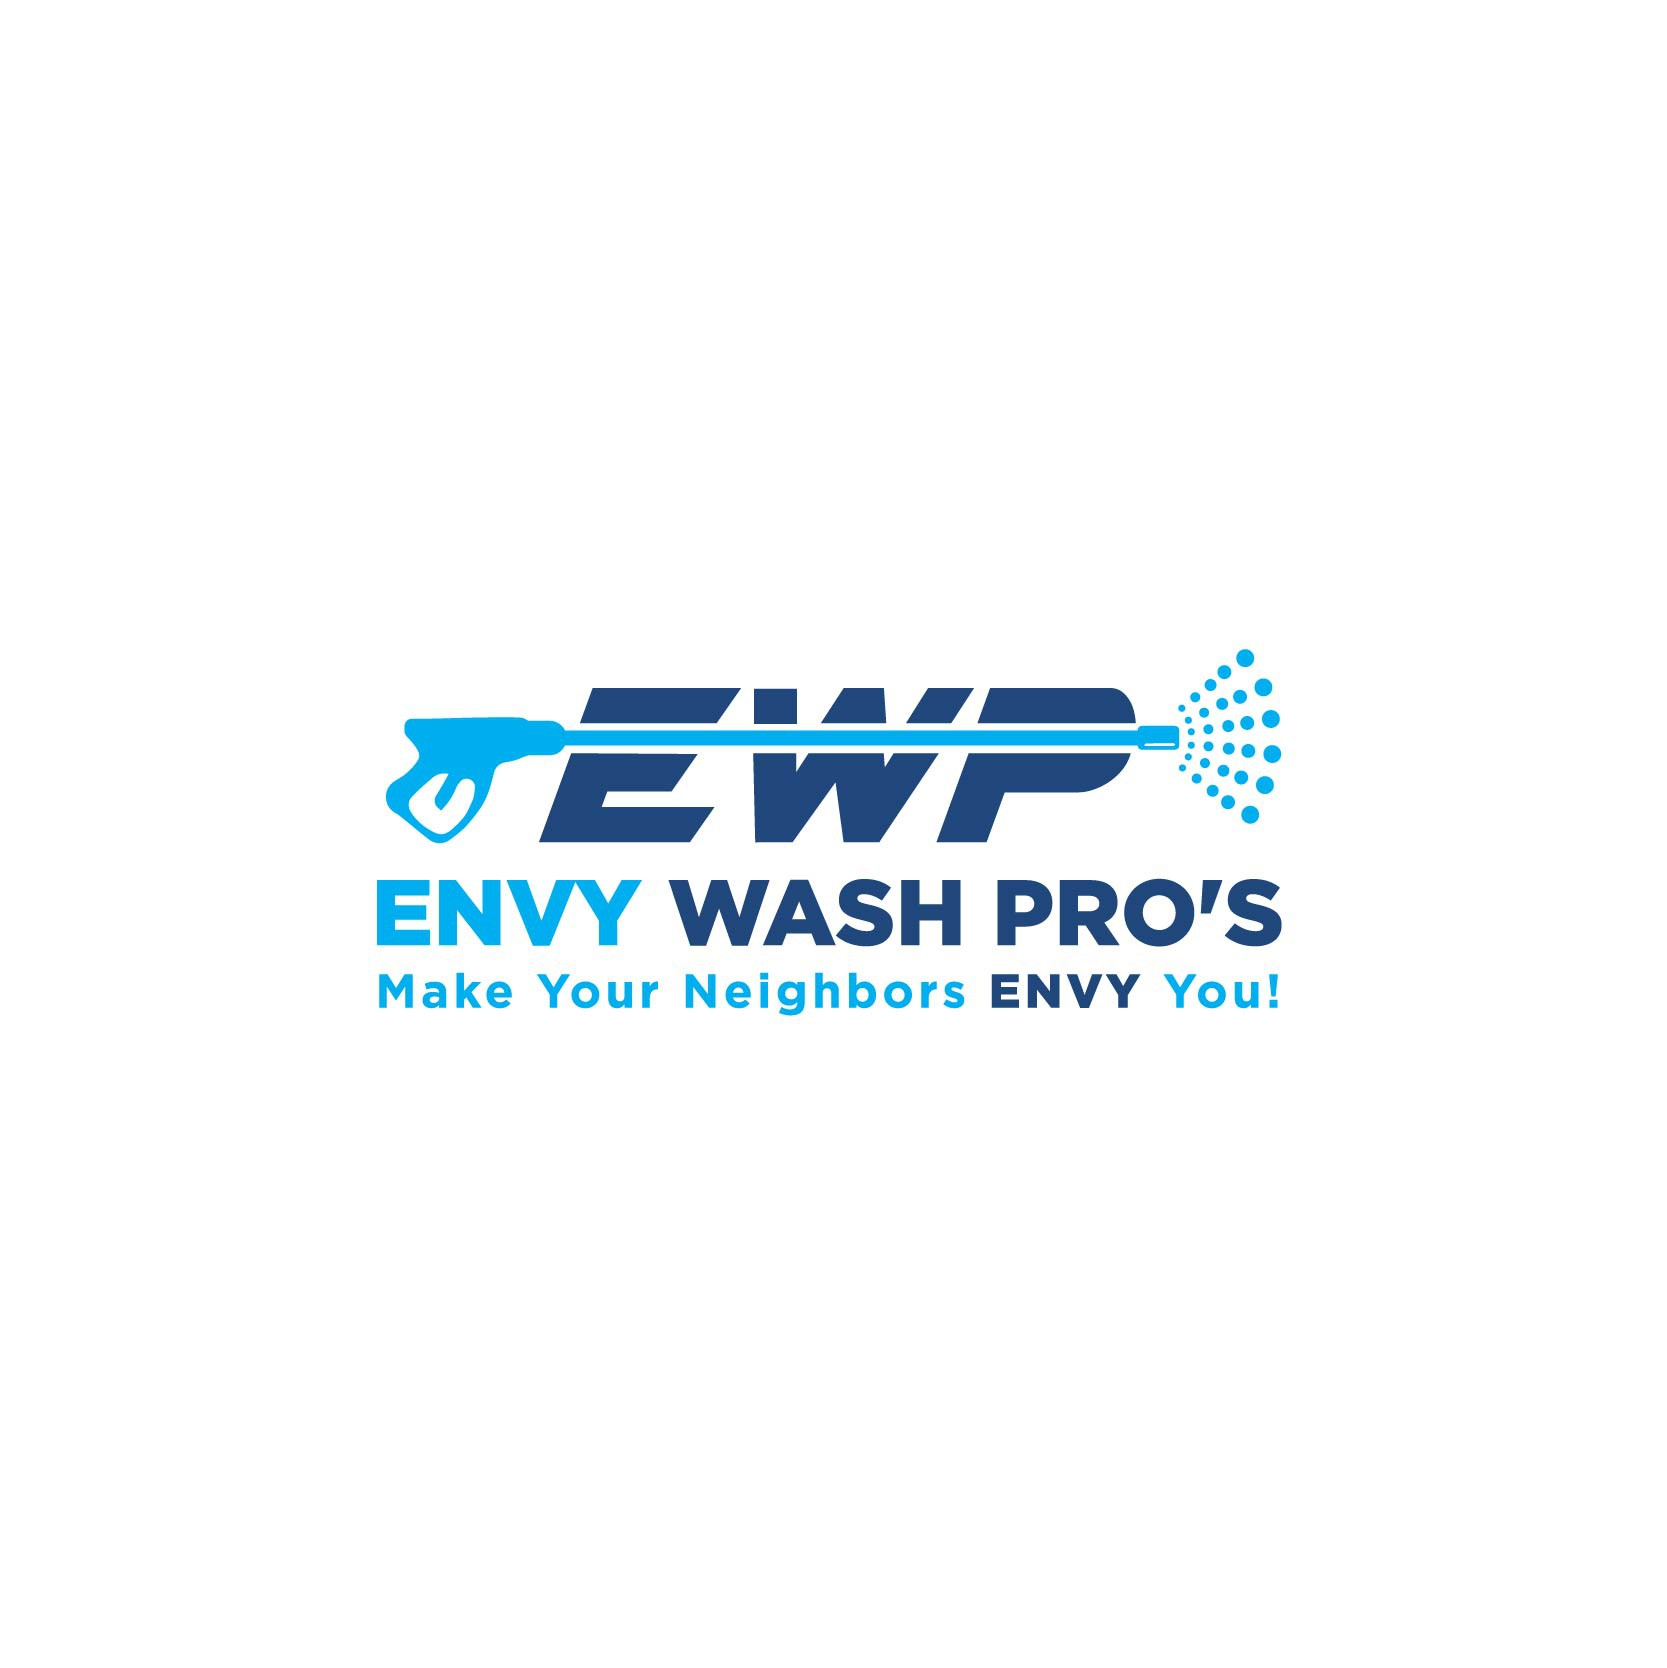 Create an alluring website to help attract customer and advertise pressure washing